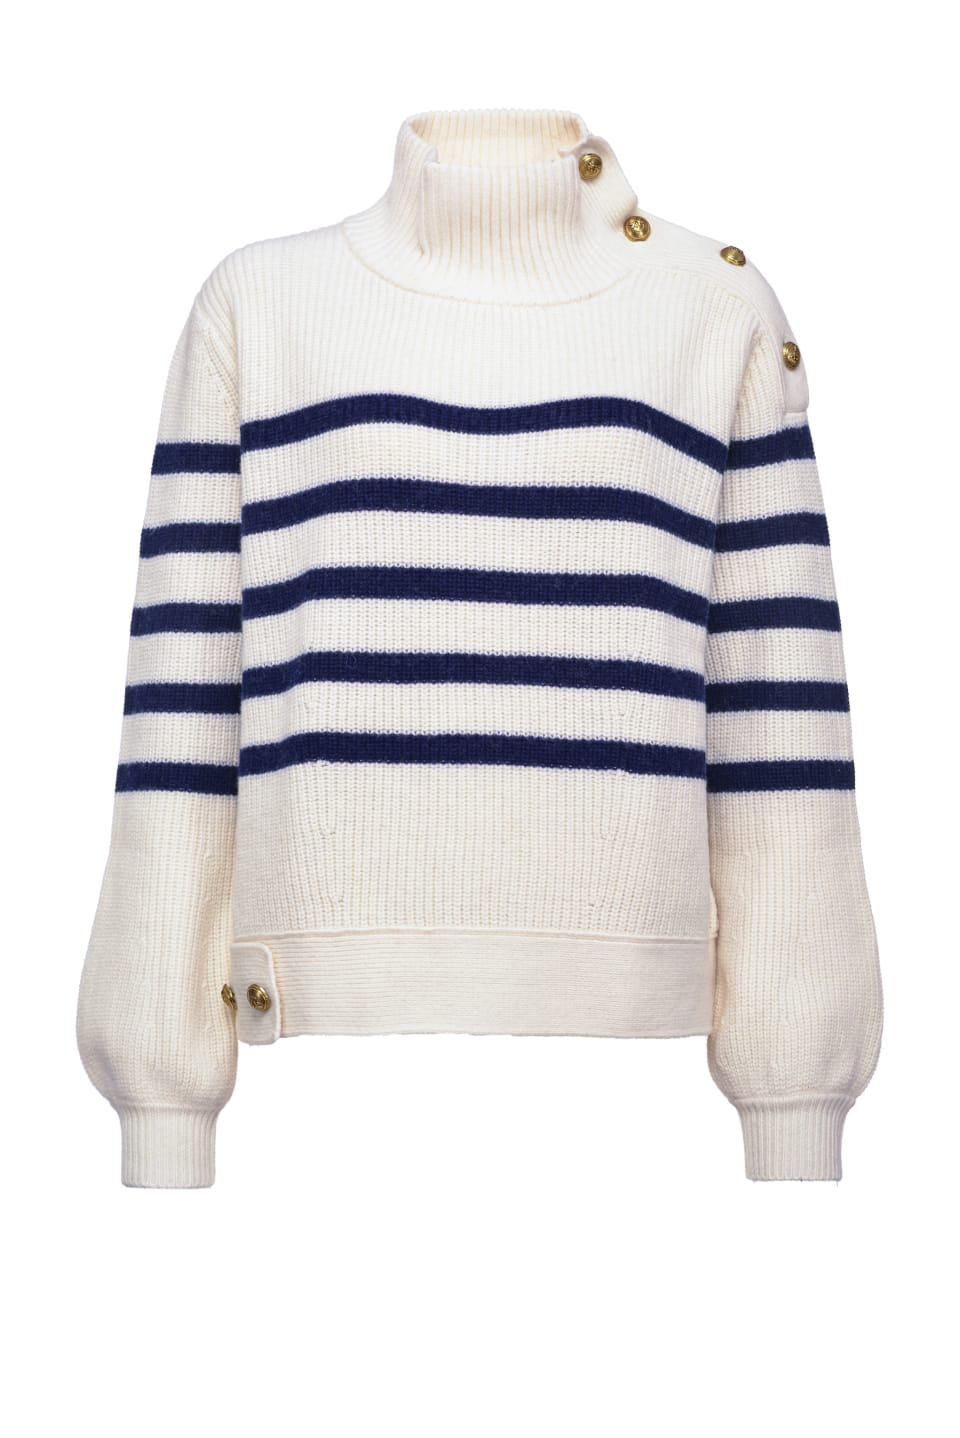 Sailor pullover with gold buttons